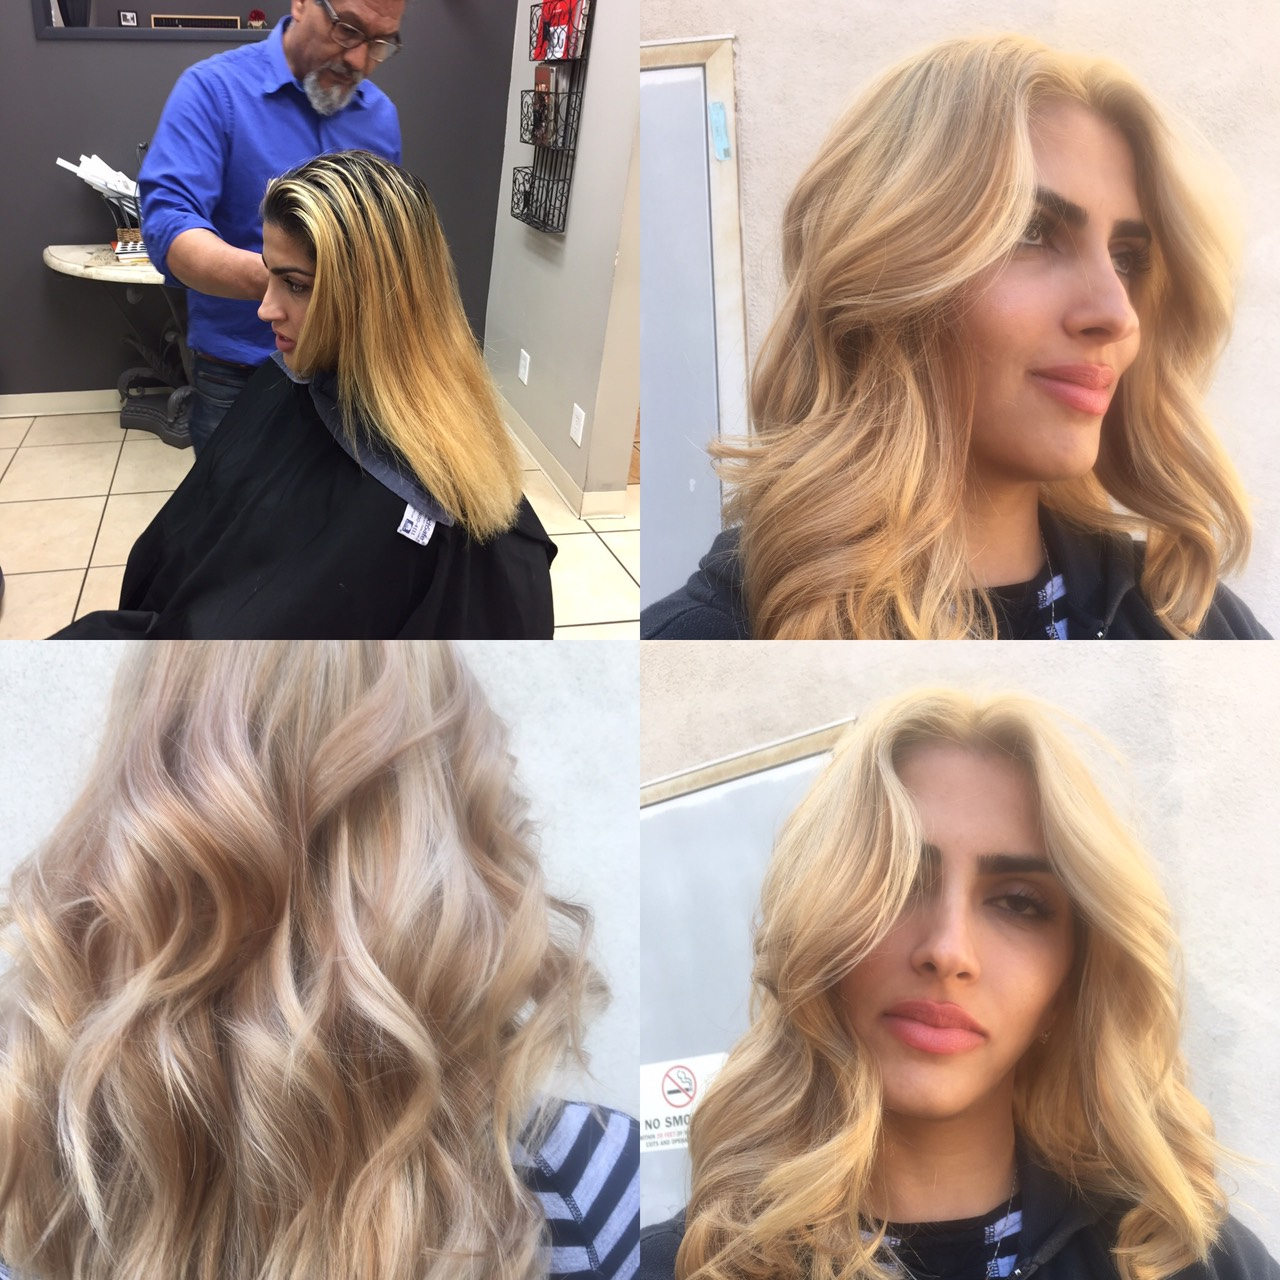 The Brighter Ideas Of Hair Color Hair Colorist Martin Rodriguez